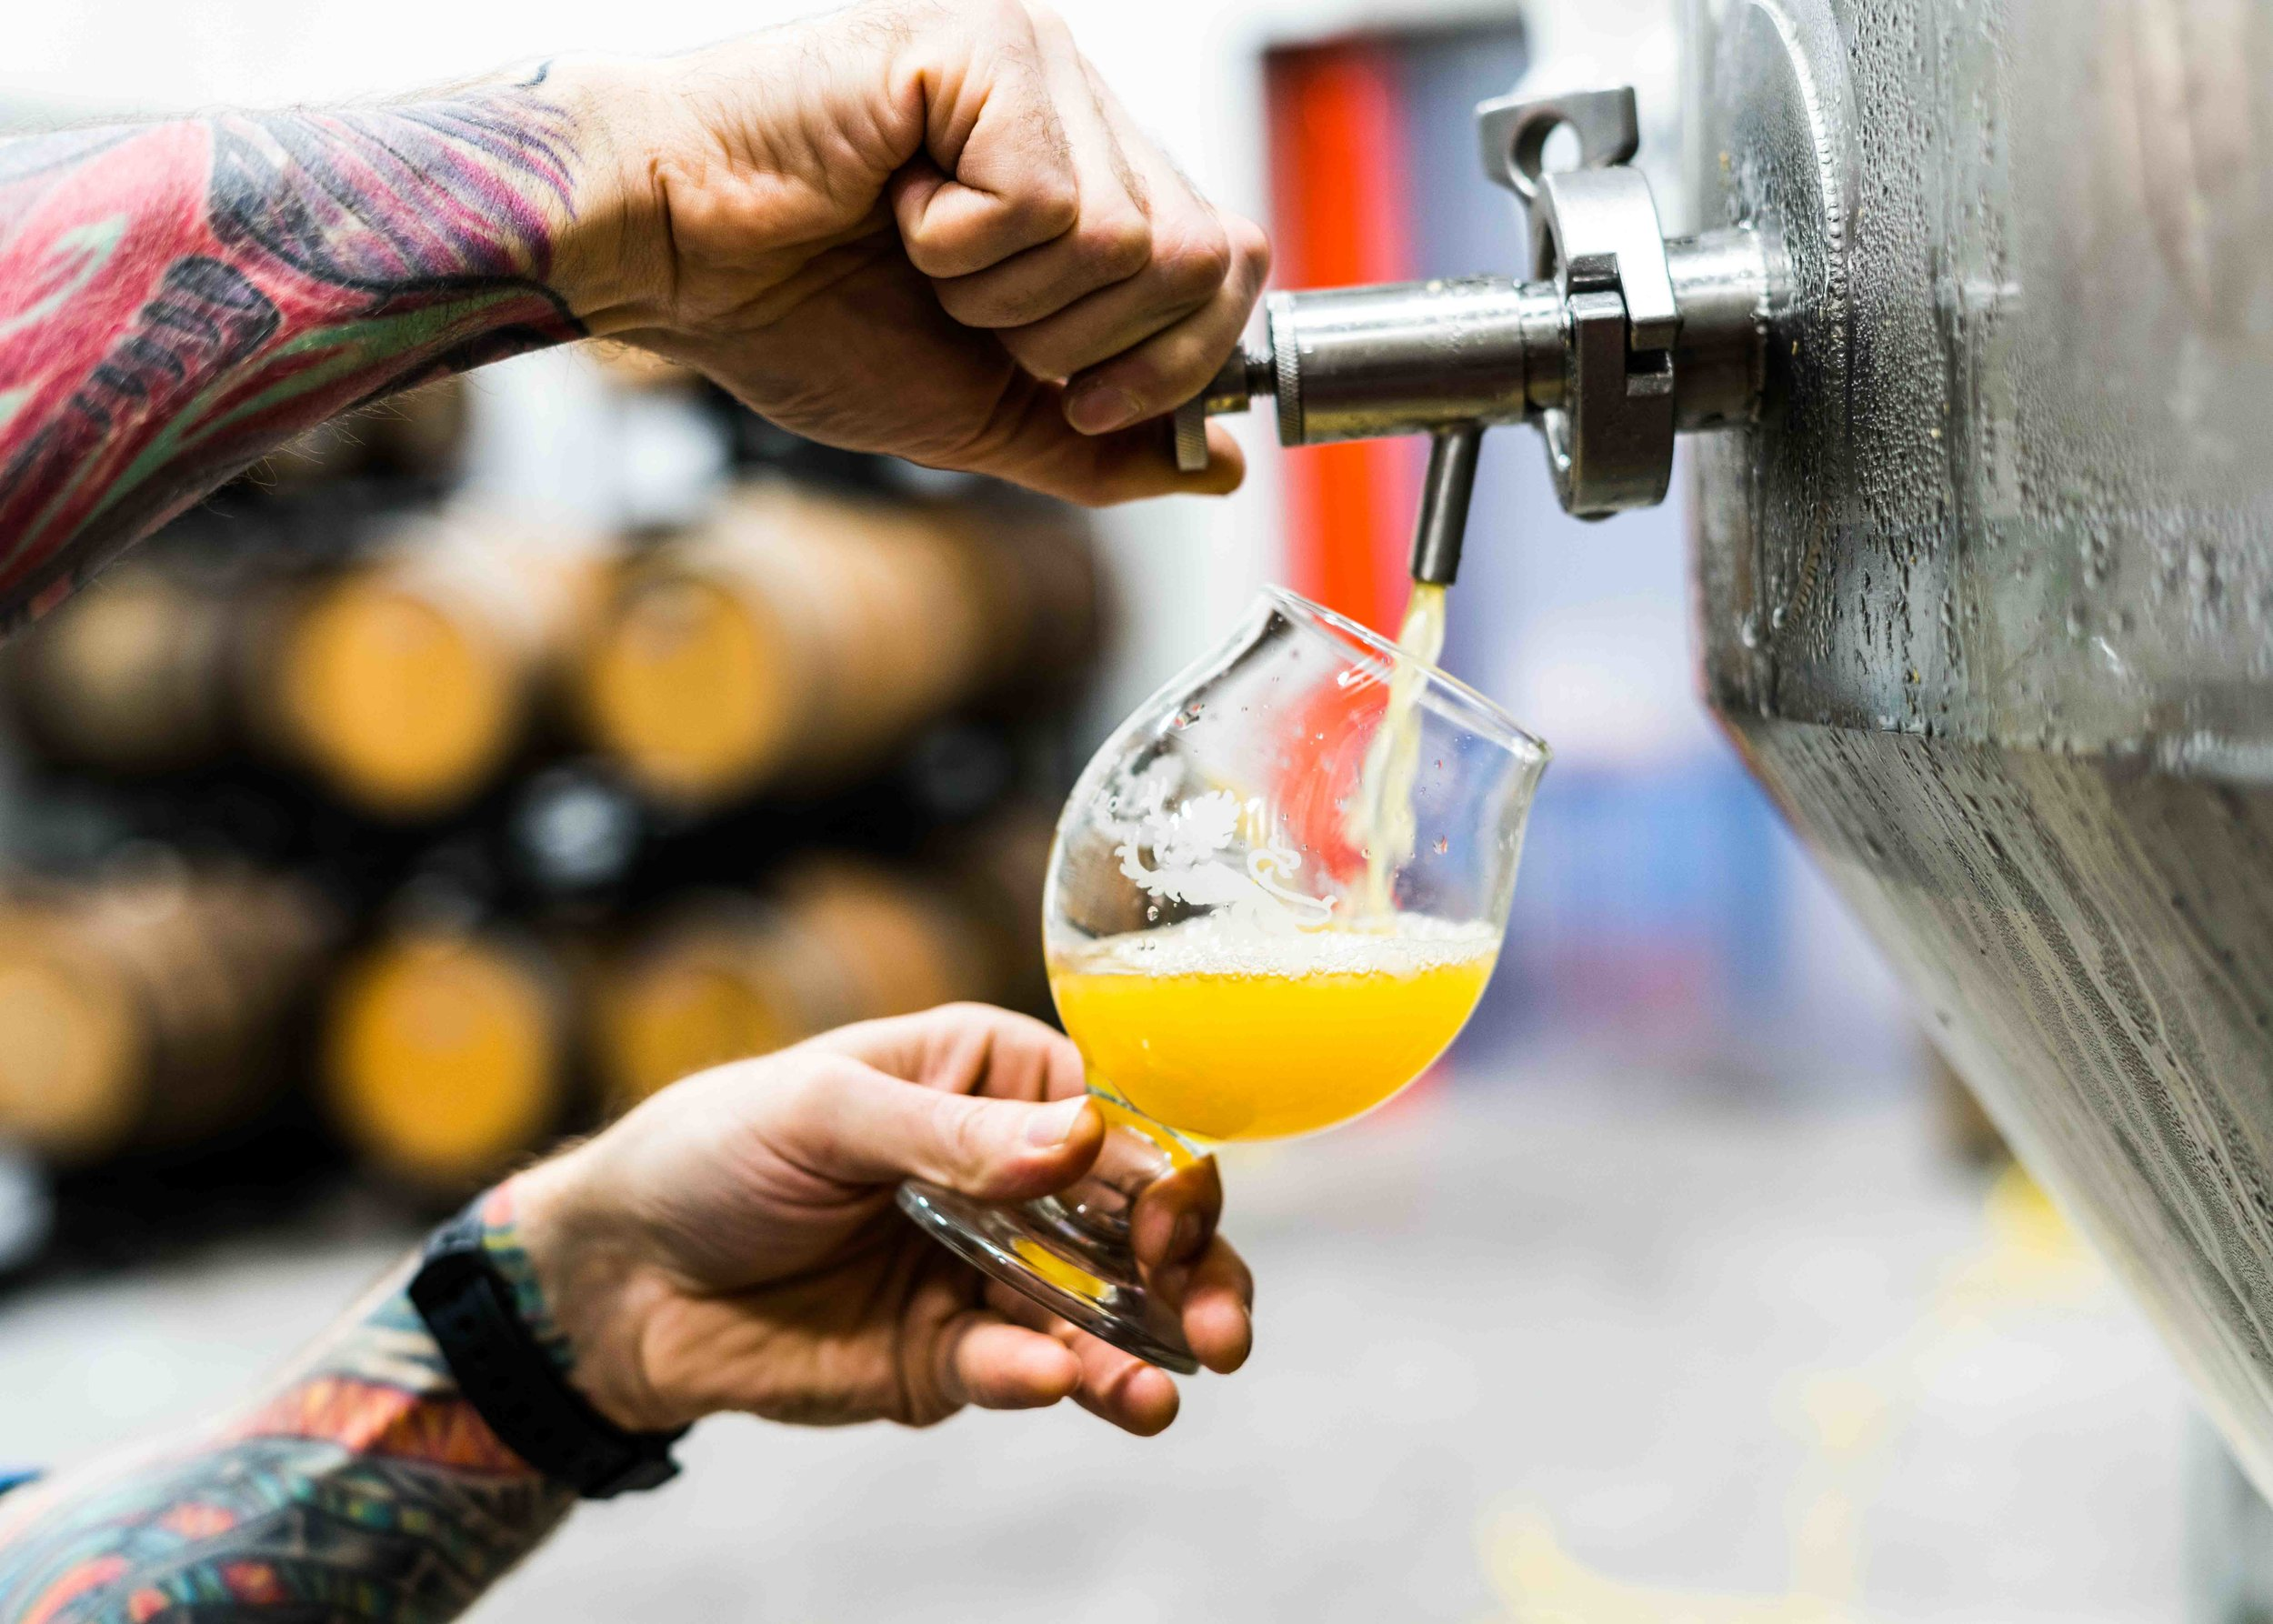 Breweries — Being located so close to the infamous Brewer's row in Port Moody. The Newport Group strives to be known as the brewery's accountants across Metro-Vancouver & the Lower Mainland.